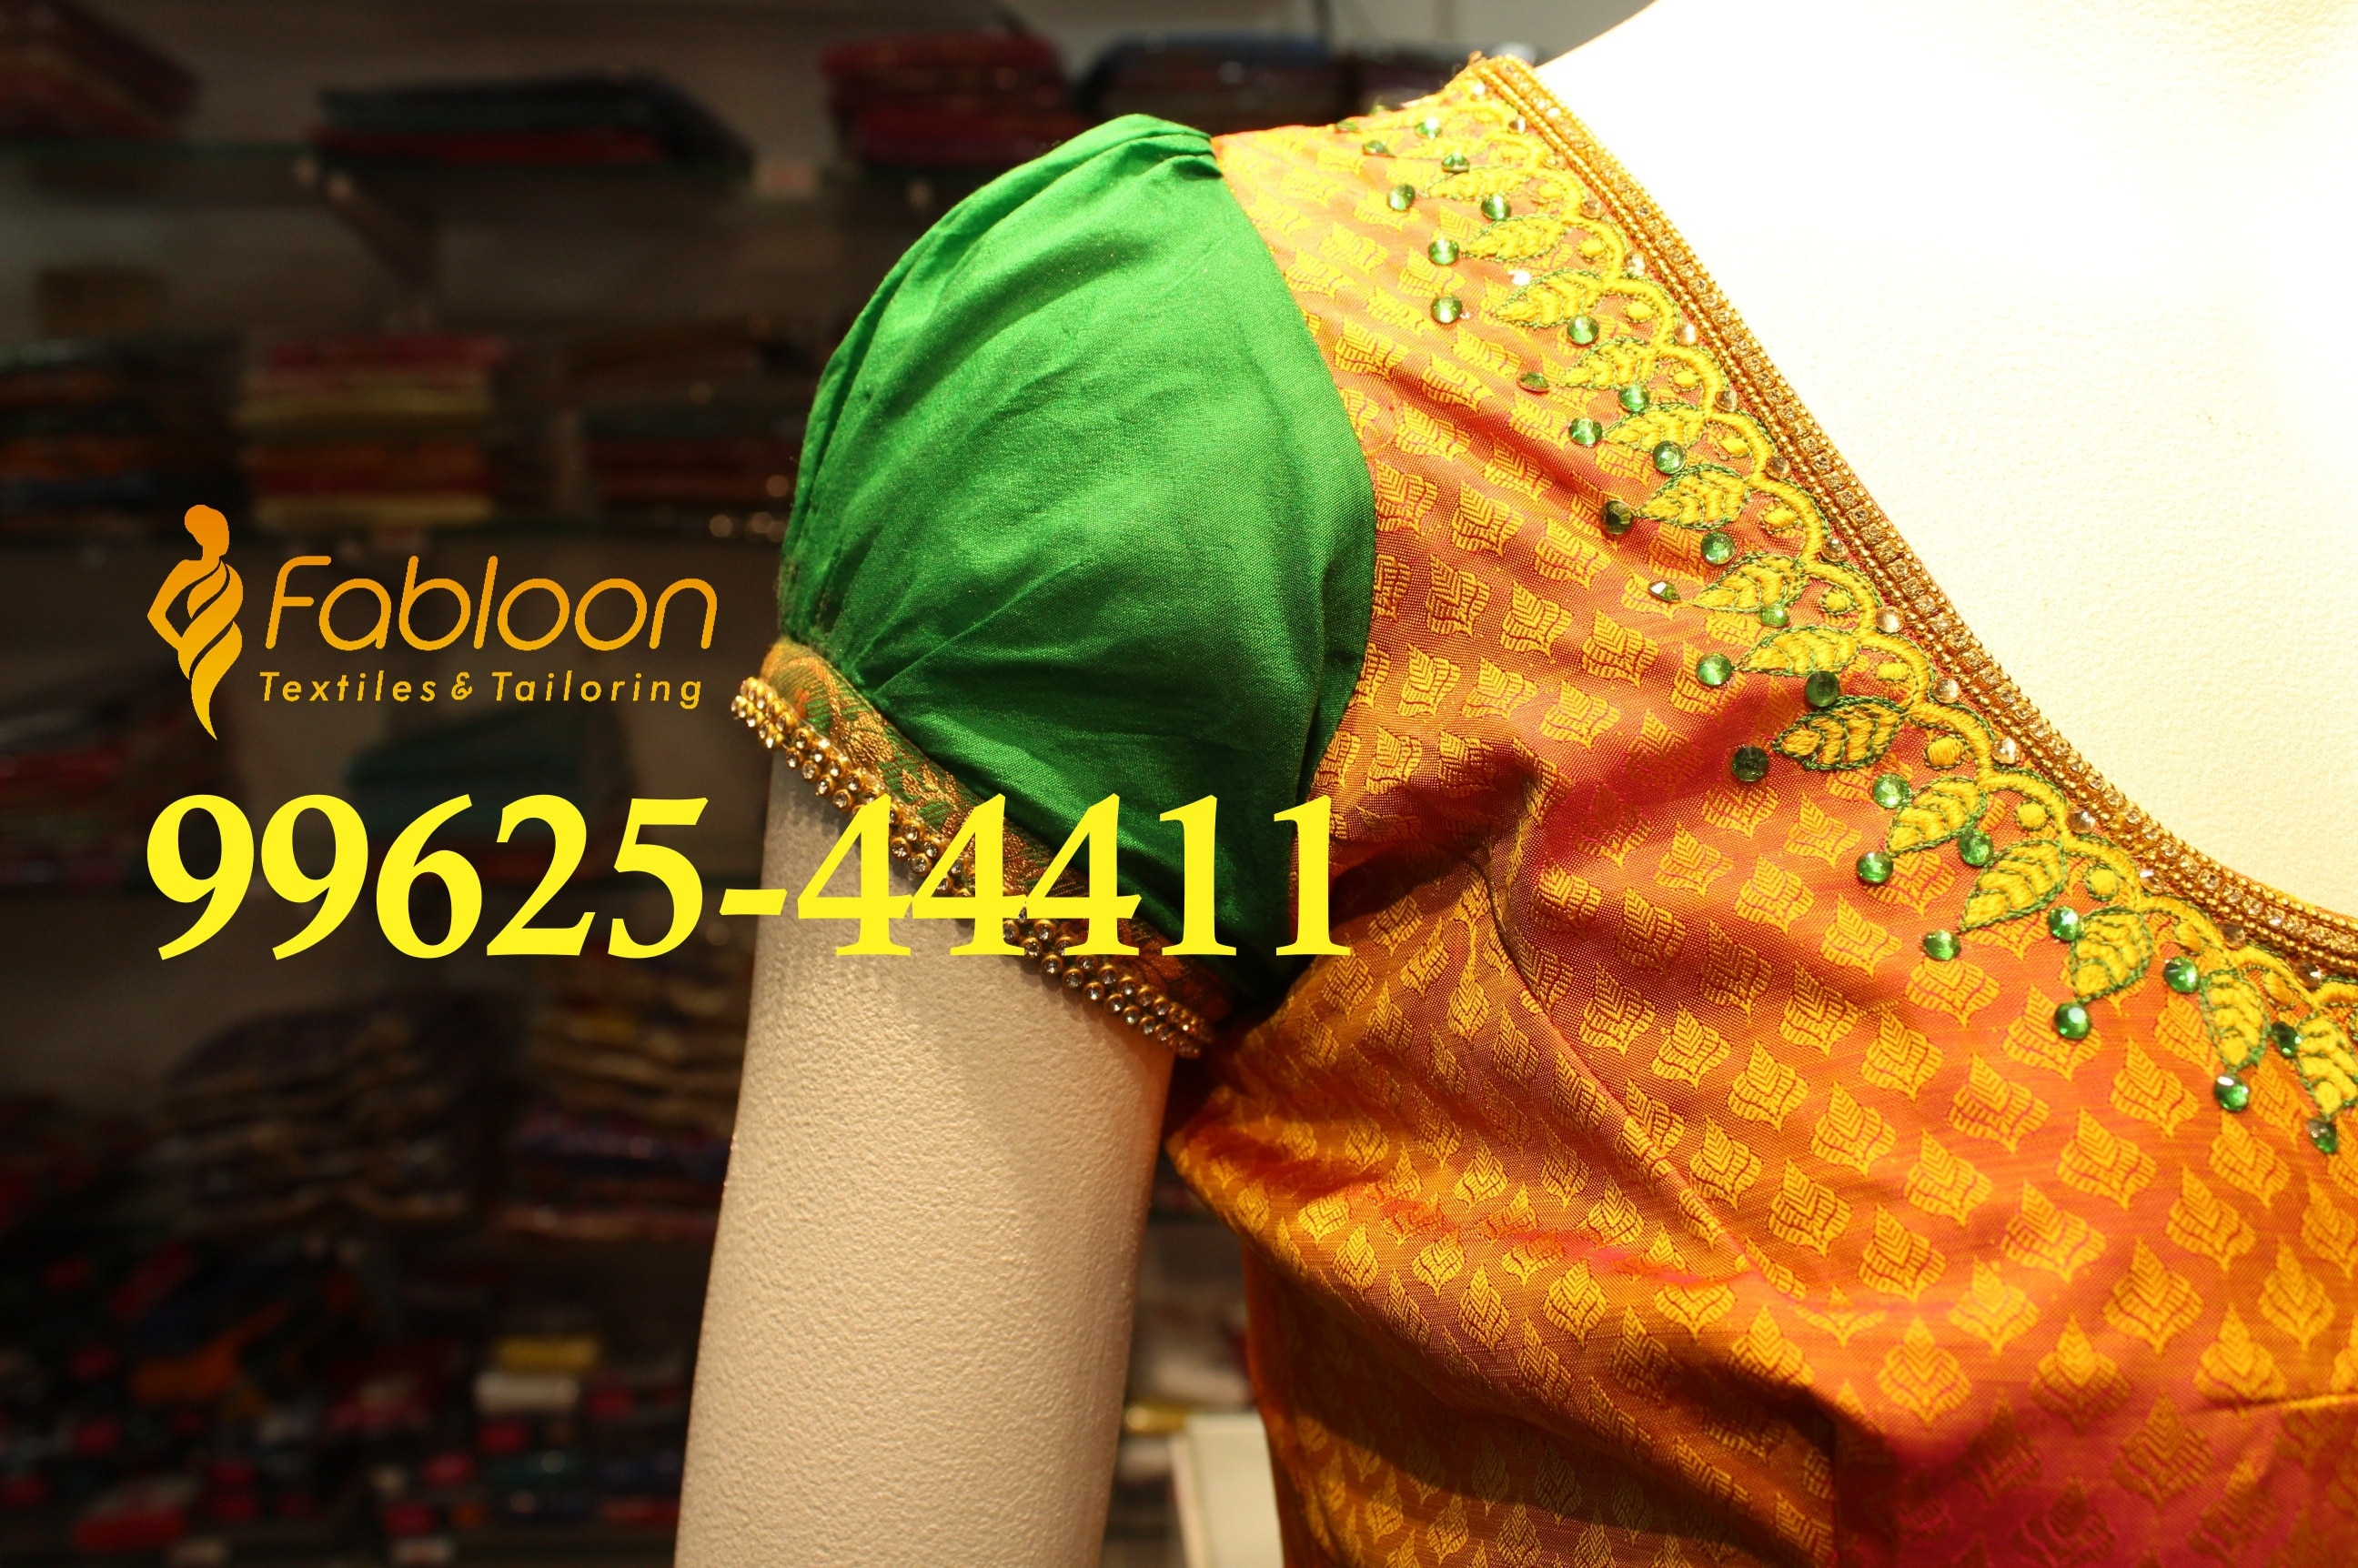 Puff Sleeve Blouse At Fabloon Blouse Tailor In Vadapalani, Mob: +91 9962544411, 044 48644411.  Pattern Blouse Tailors In Vadapalani. Embroidery Blouse Tailors At Vadapalani. Work Blouse Tailors Near Vadapalani. Normal Blouse Tailors Around Vadapalani. Check all updates for more collections.